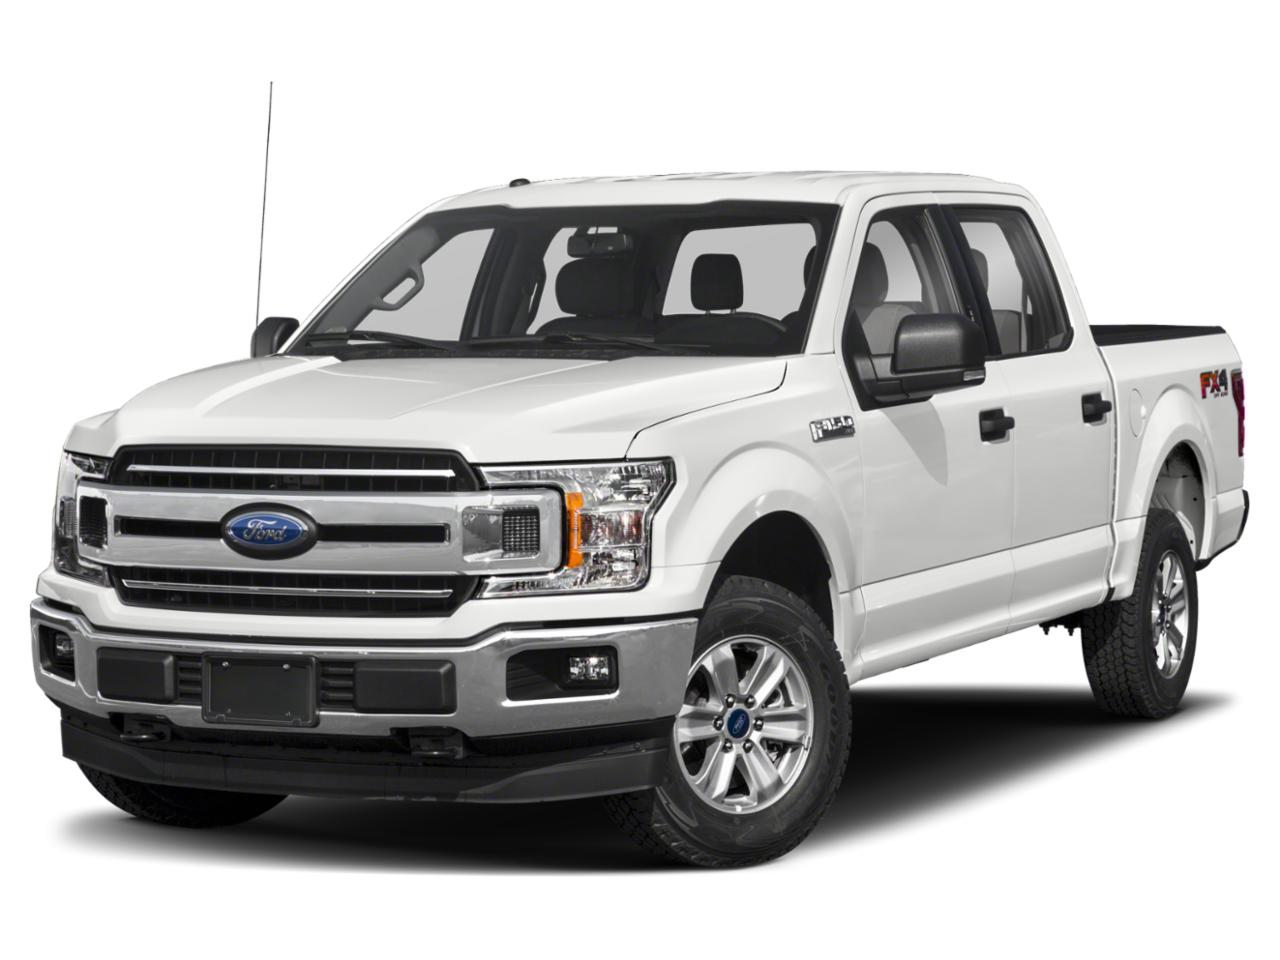 2019 Ford F-150 Vehicle Photo in HOUSTON, TX 77054-4802